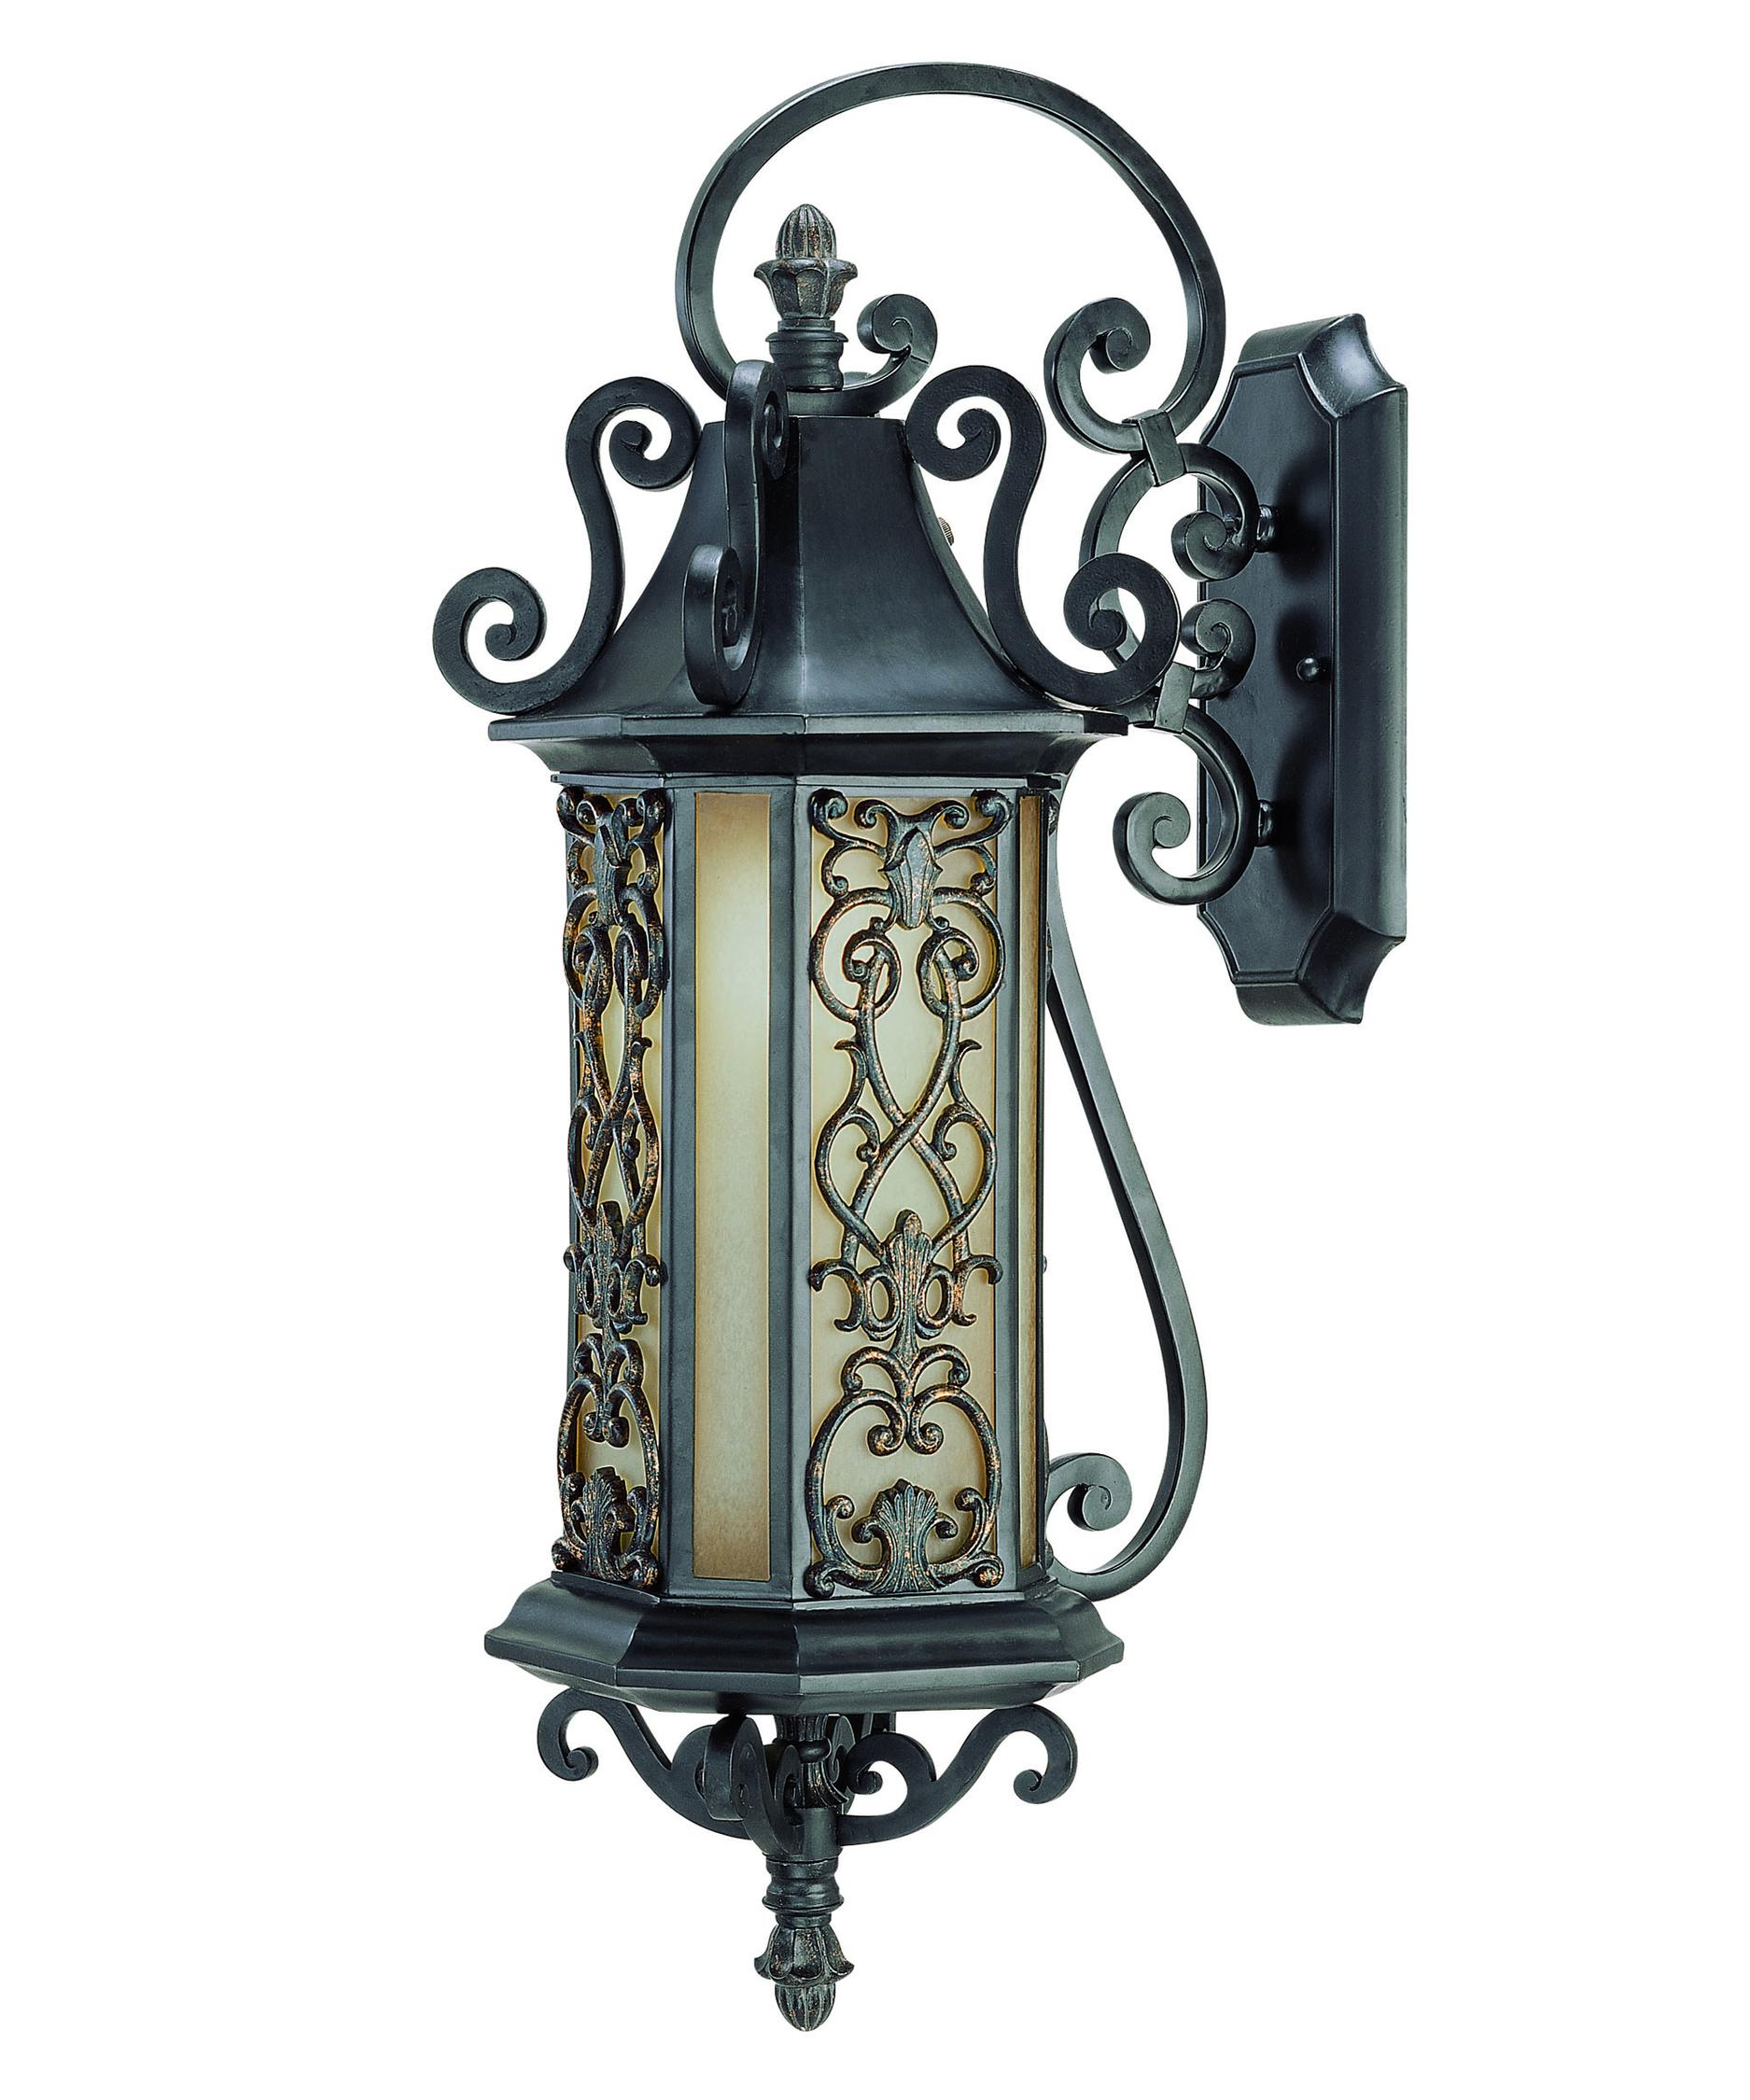 shown in como black with gold finish and tuscan glass - Savoy Lighting